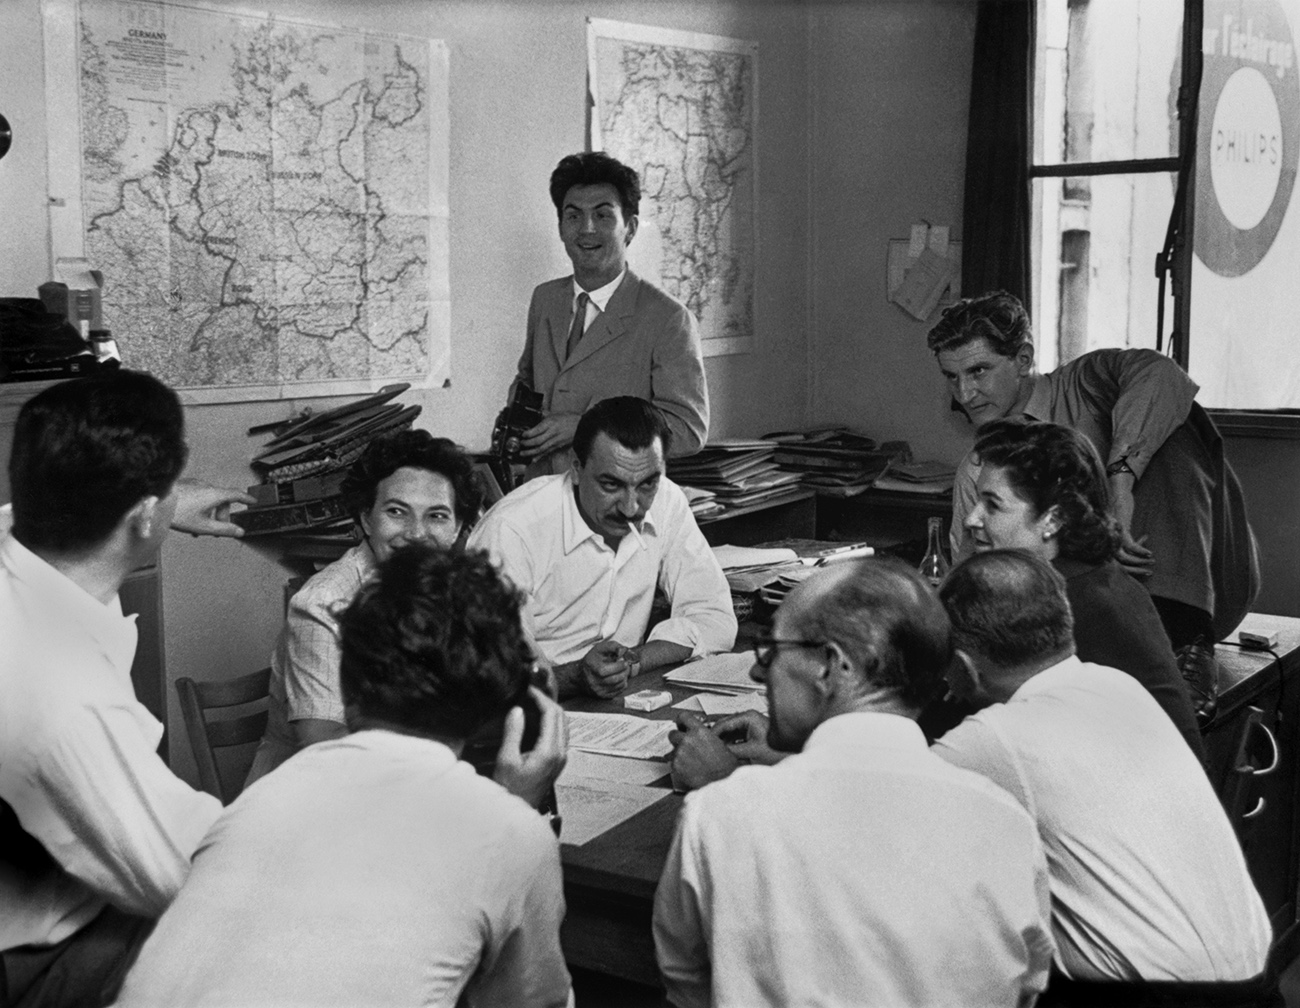 The black-and-white photograph shows several men and women in business attire in animated conversation.